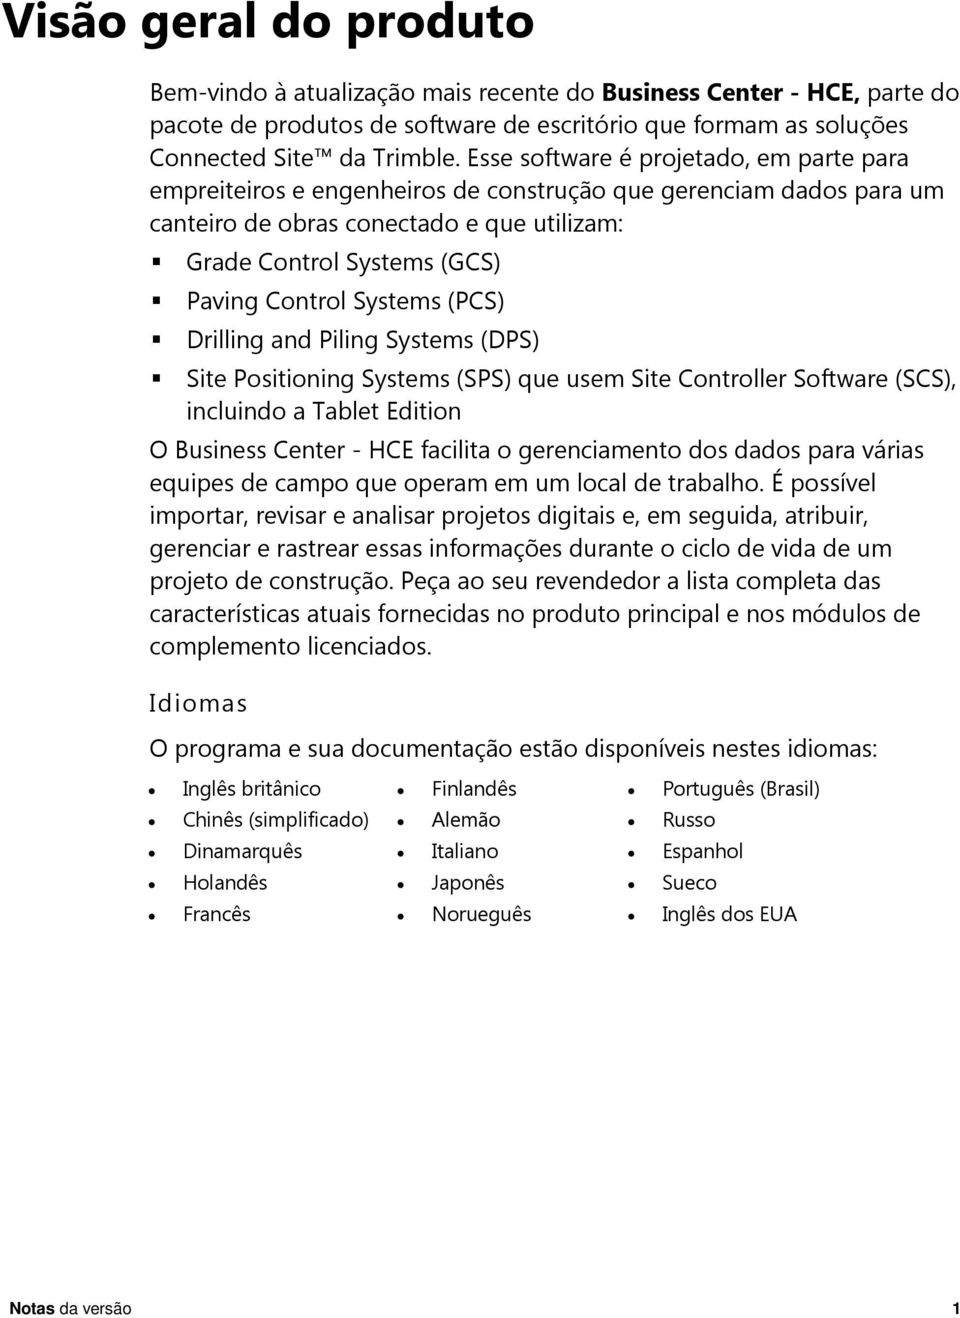 Systems (PCS) Drilling and Piling Systems (DPS) Site Positioning Systems (SPS) que usem Site Controller Software (SCS), incluindo a Tablet Edition O Business Center - HCE facilita o gerenciamento dos